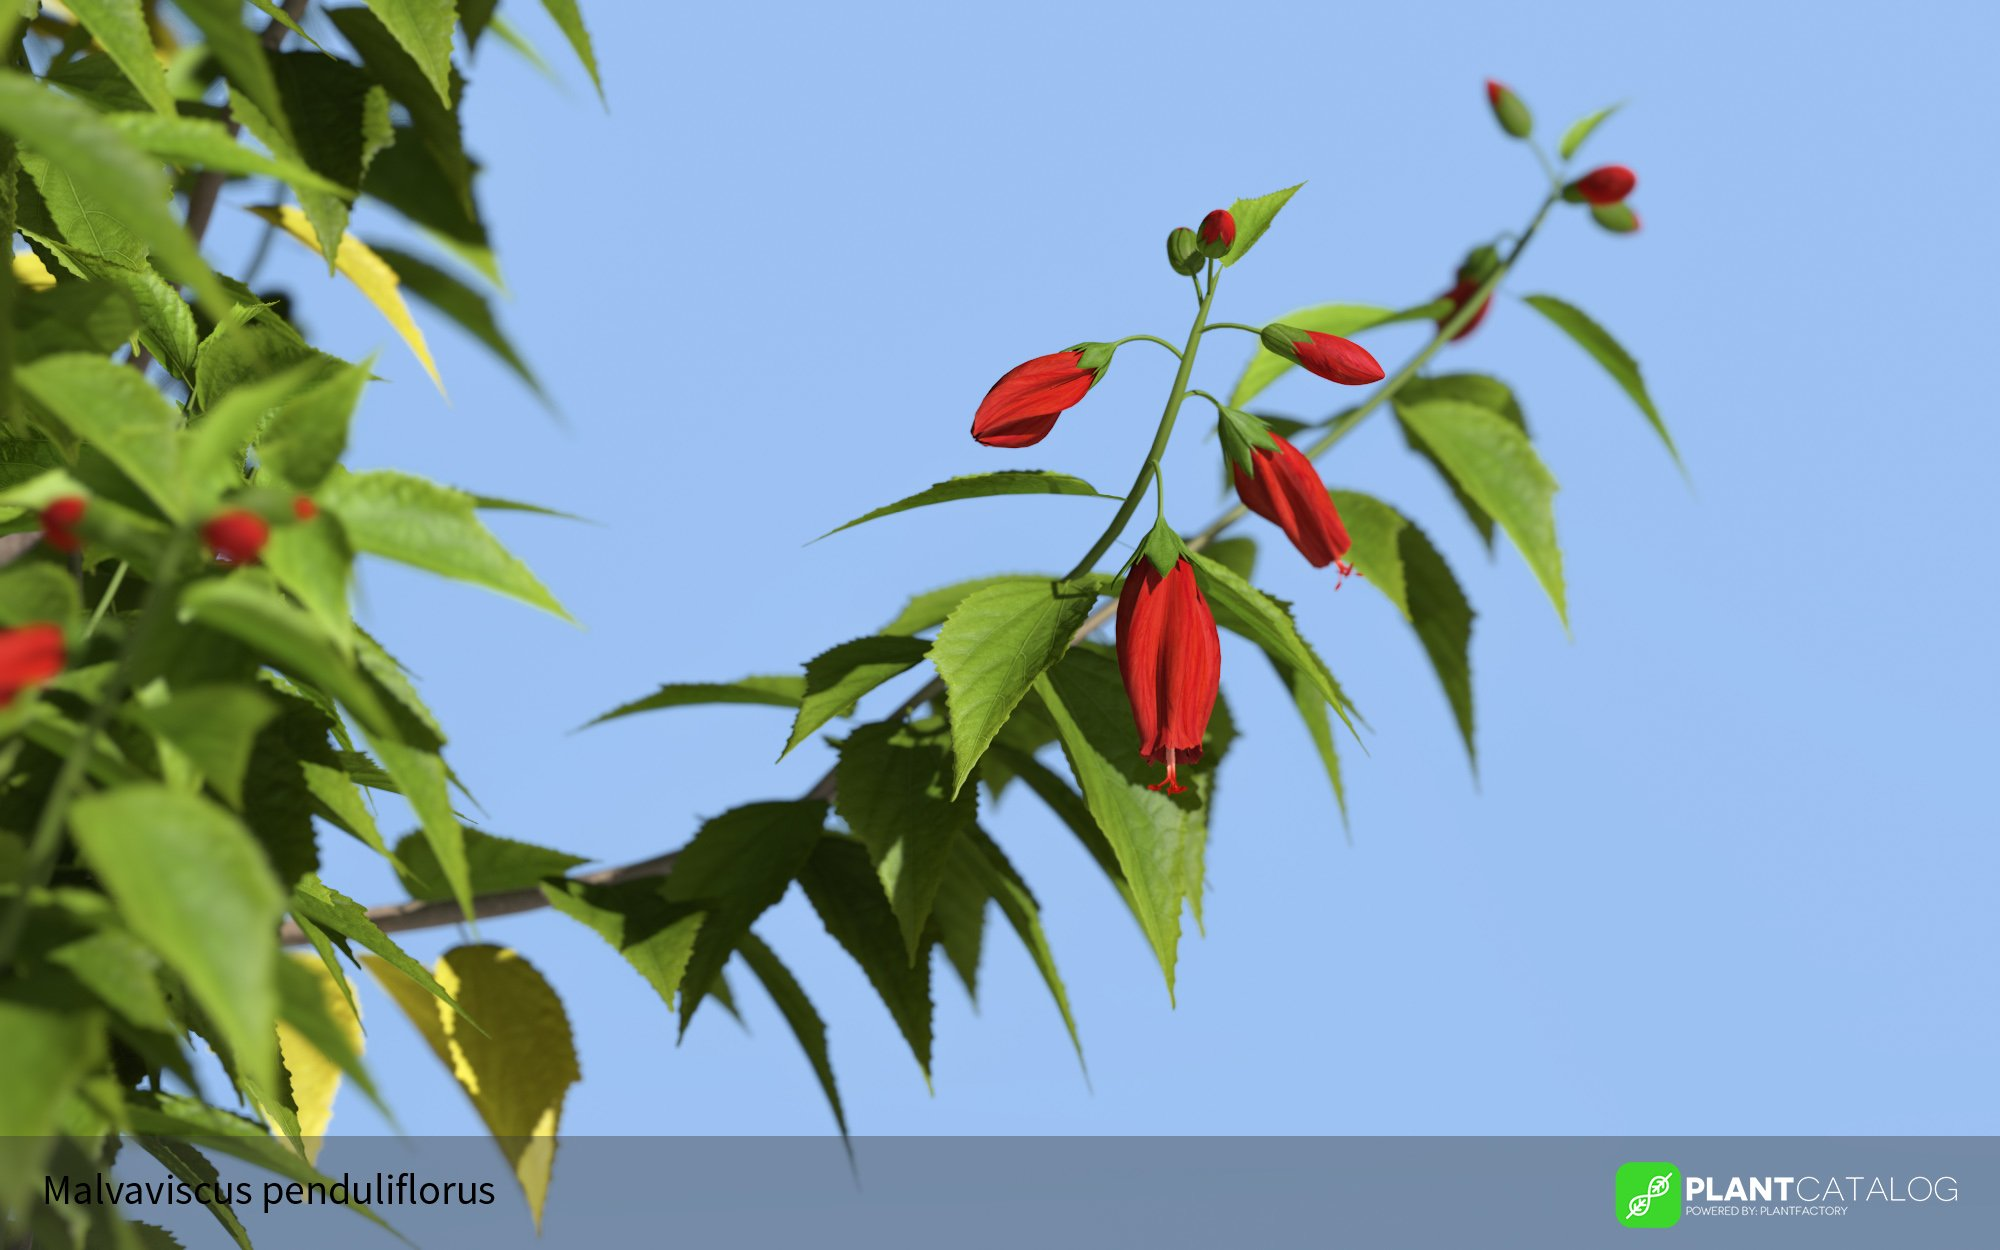 3D model of the Turk's cap mallow  - Malvaviscus penduliflorus - from the PlantCatalog, rendered in VUE